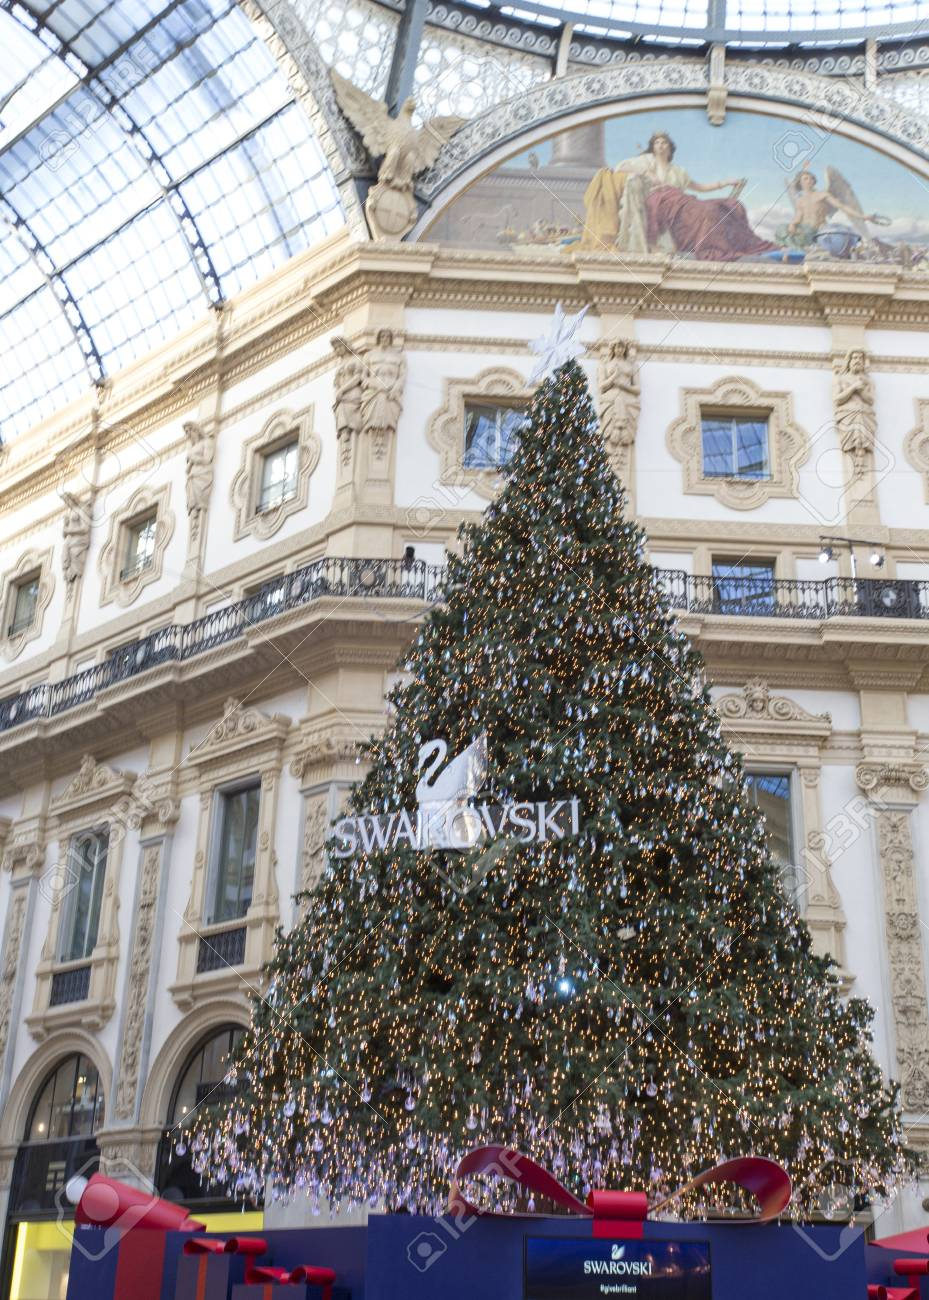 designer fashion 5c924 189d0 Milan, Italy - November 26, 2017: Swarovski Christmas tree in..